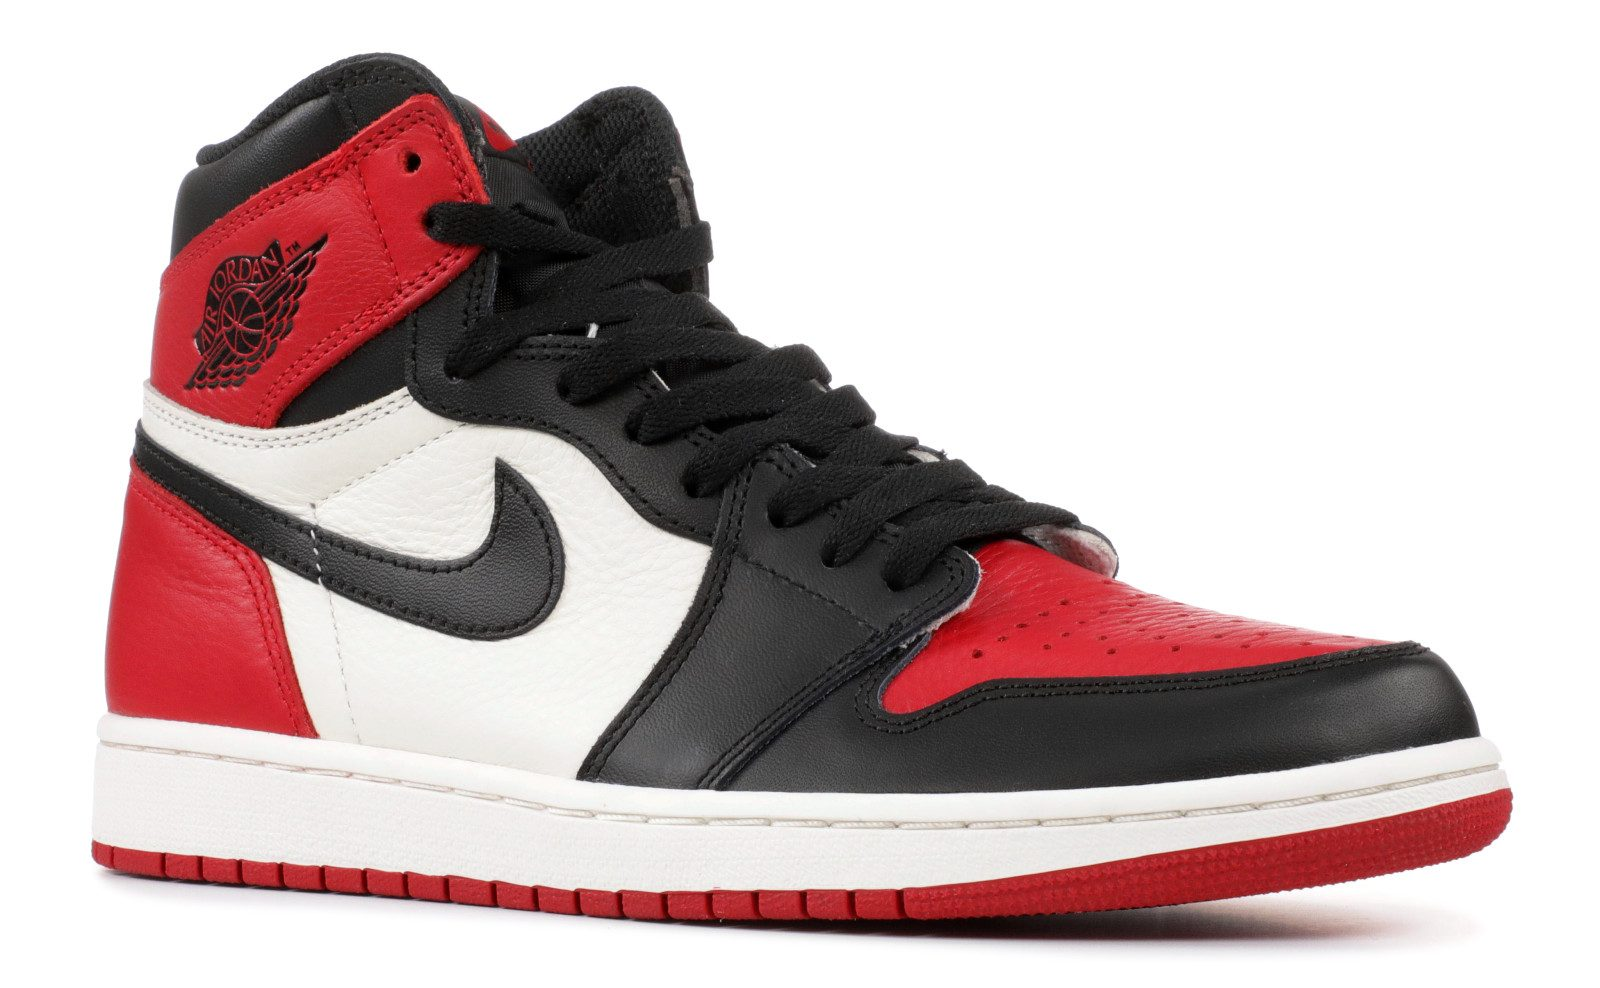 edc4f744c25 air jordan 1 Archives - Page 3 of 8 - WearTesters